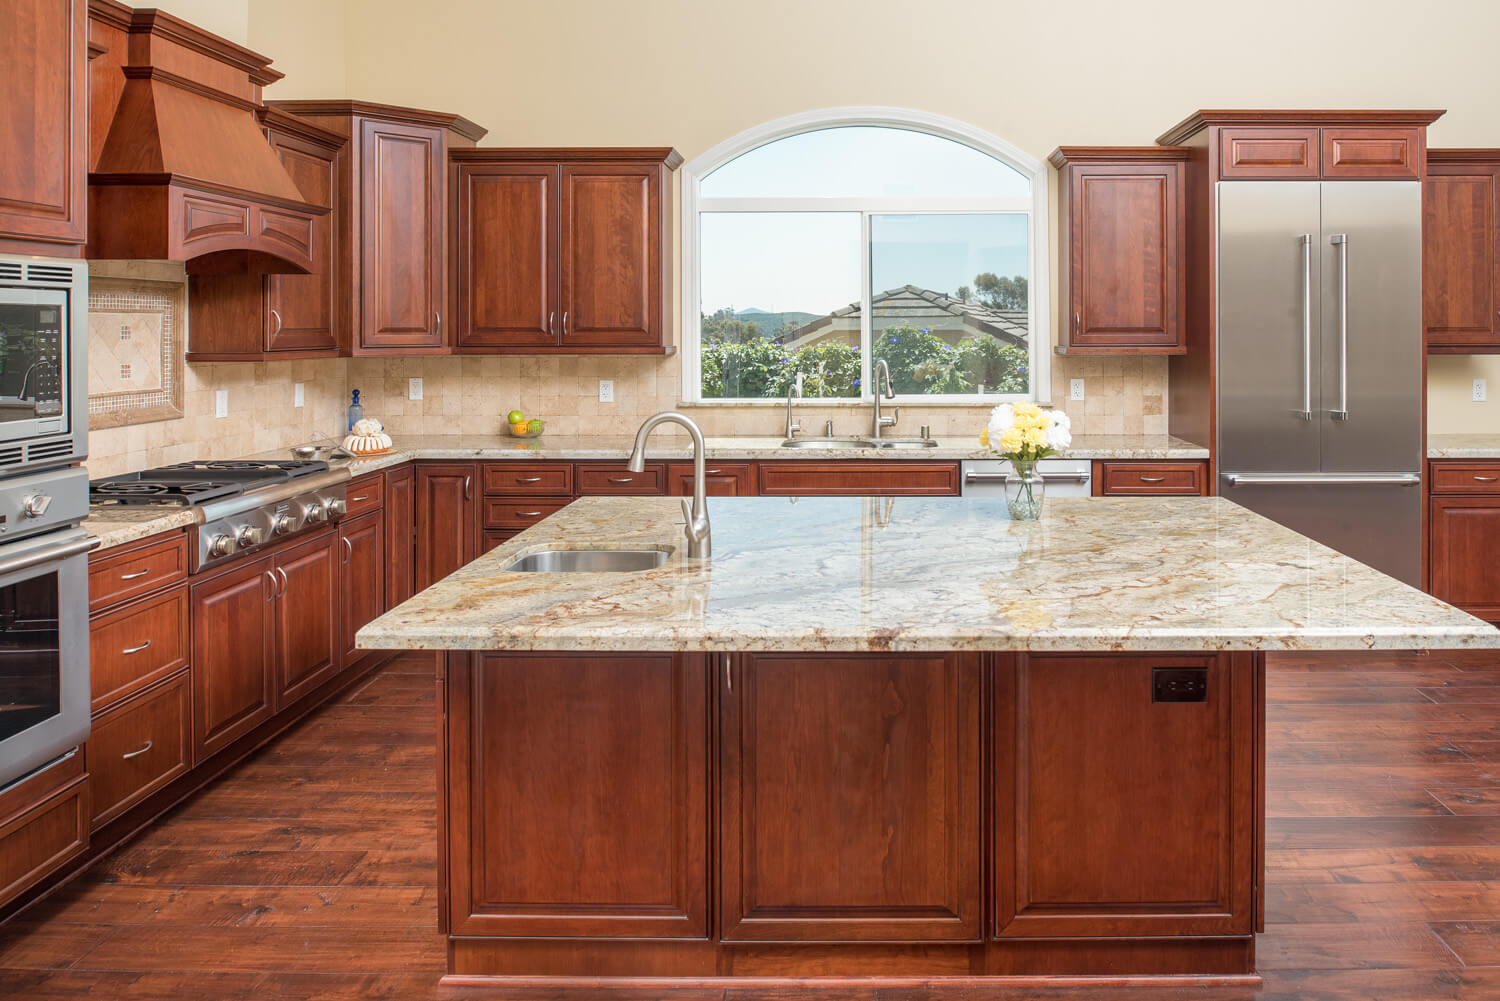 san diego kitchen remodel wood table whole house renovation classic home improvements